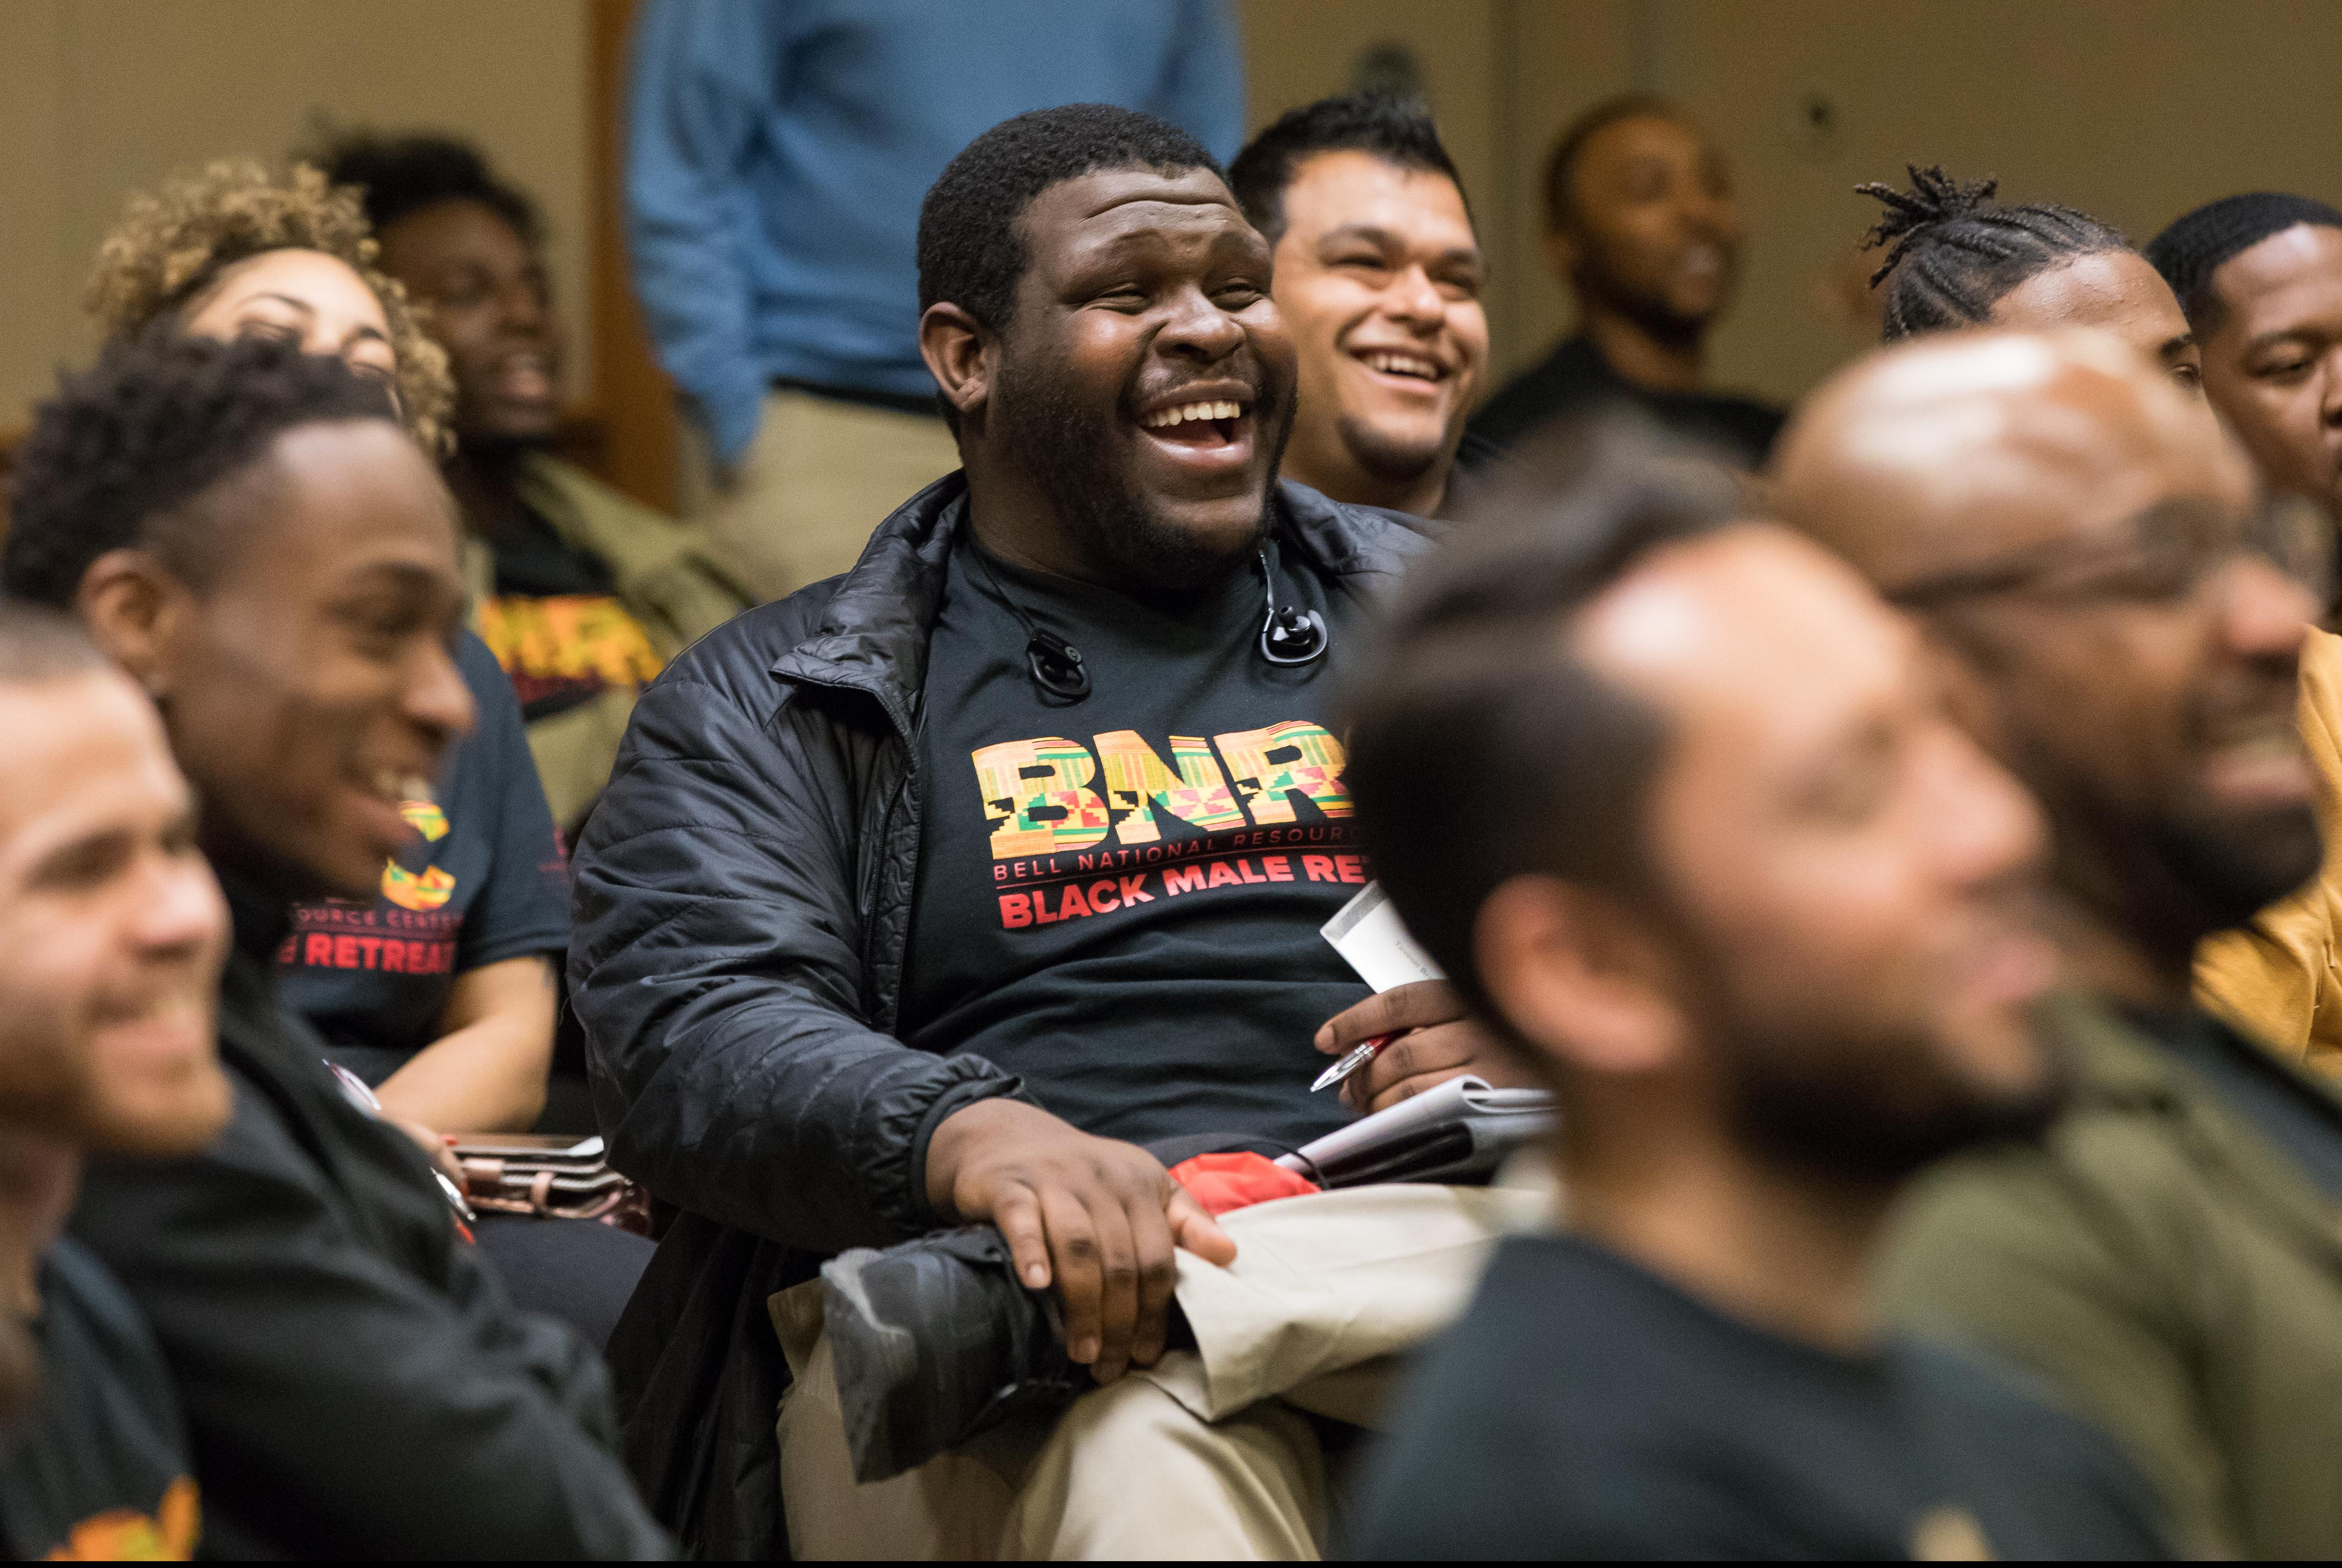 Black male in BNRC retreat shirt laughing into camera